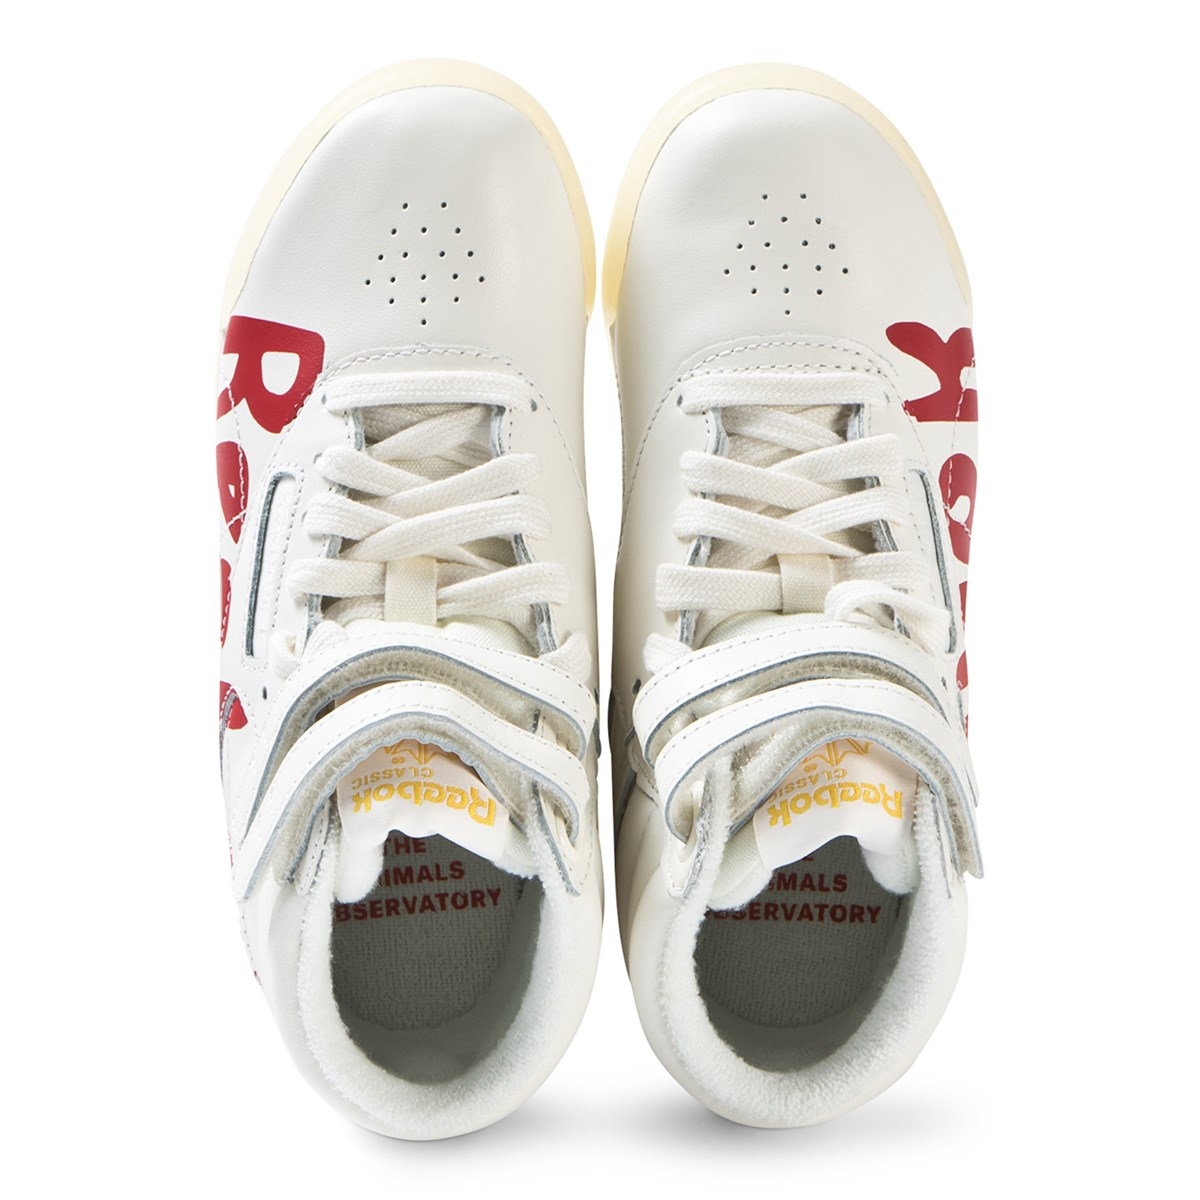 6b235c1db22 The Animals Observatory - White and Red Logo TAO Freestyle Hi-Tops -  Babyshop.com